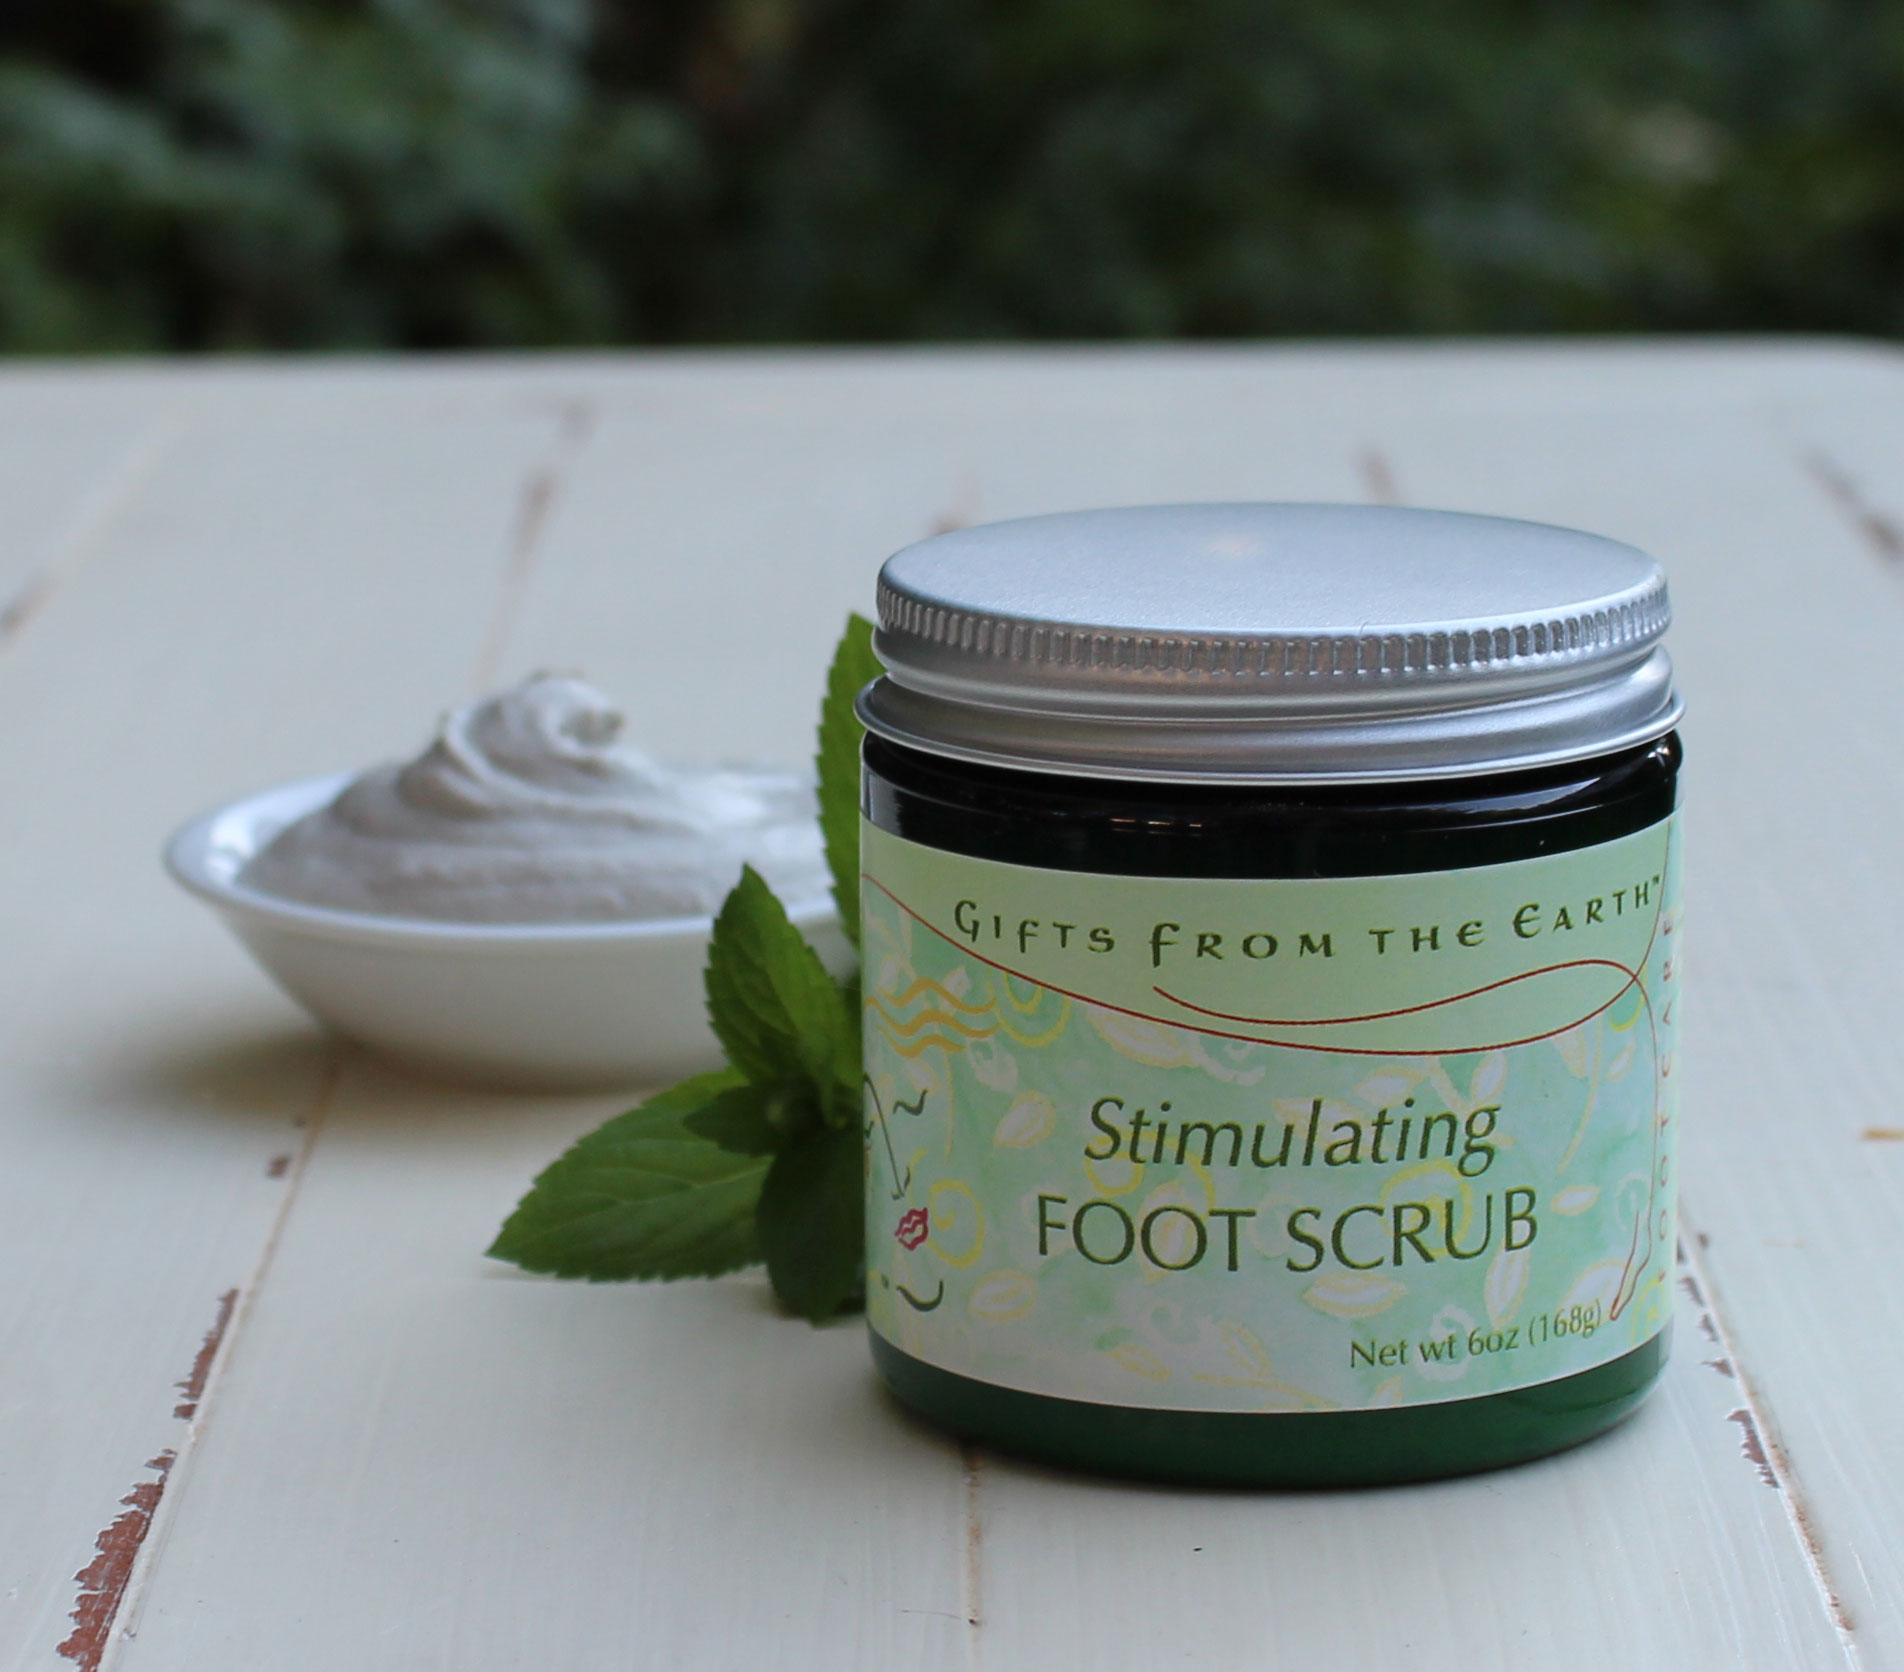 stimulating_foot_scrub